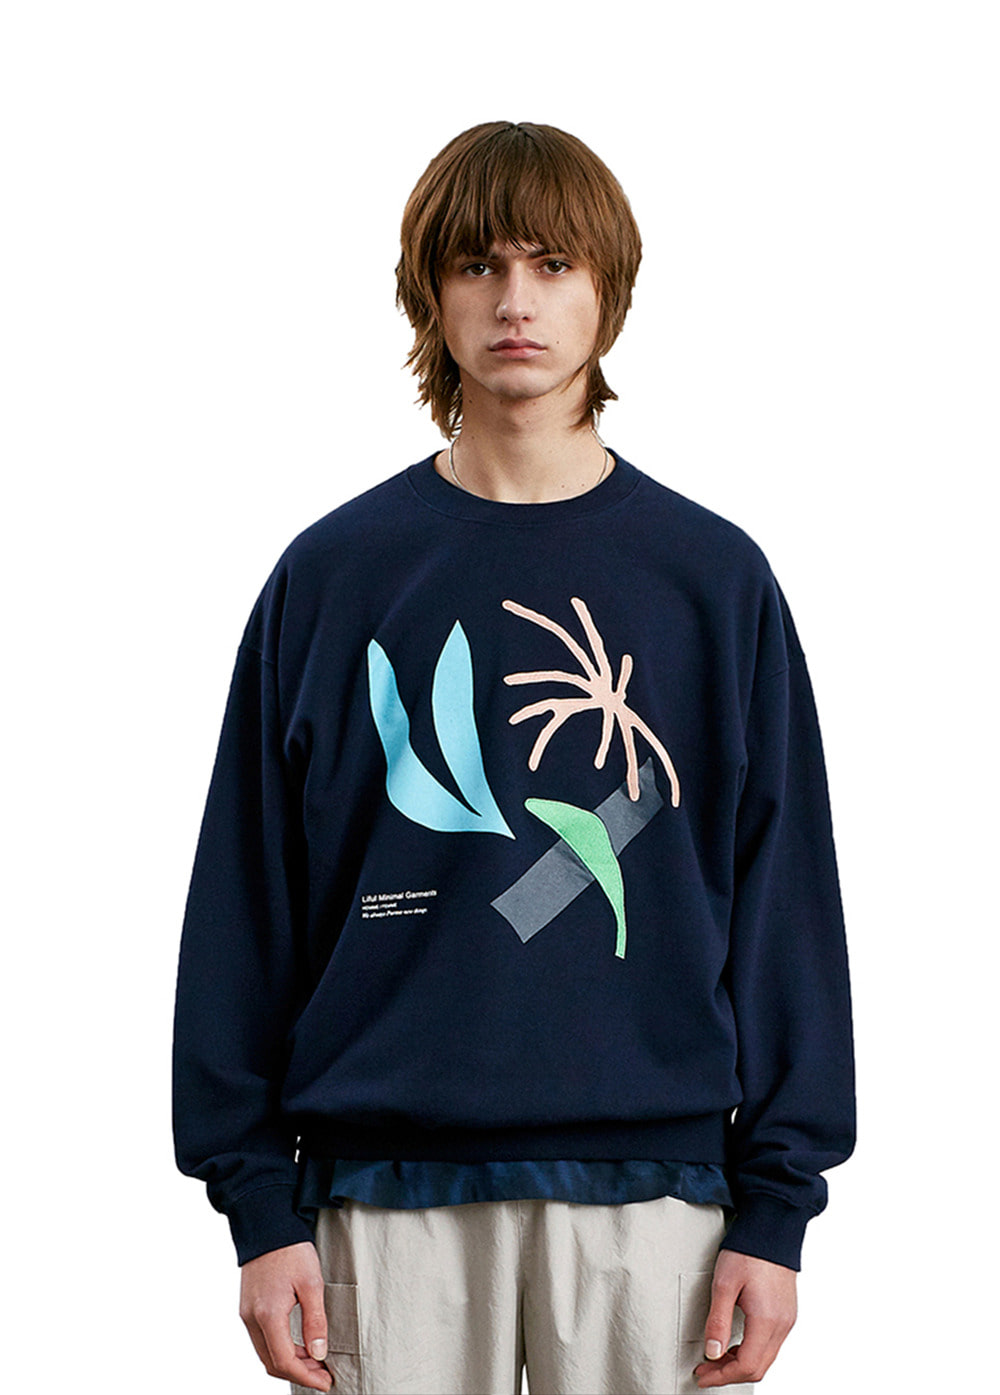 DOODLING COLLAGE SWEATSHIRT navy